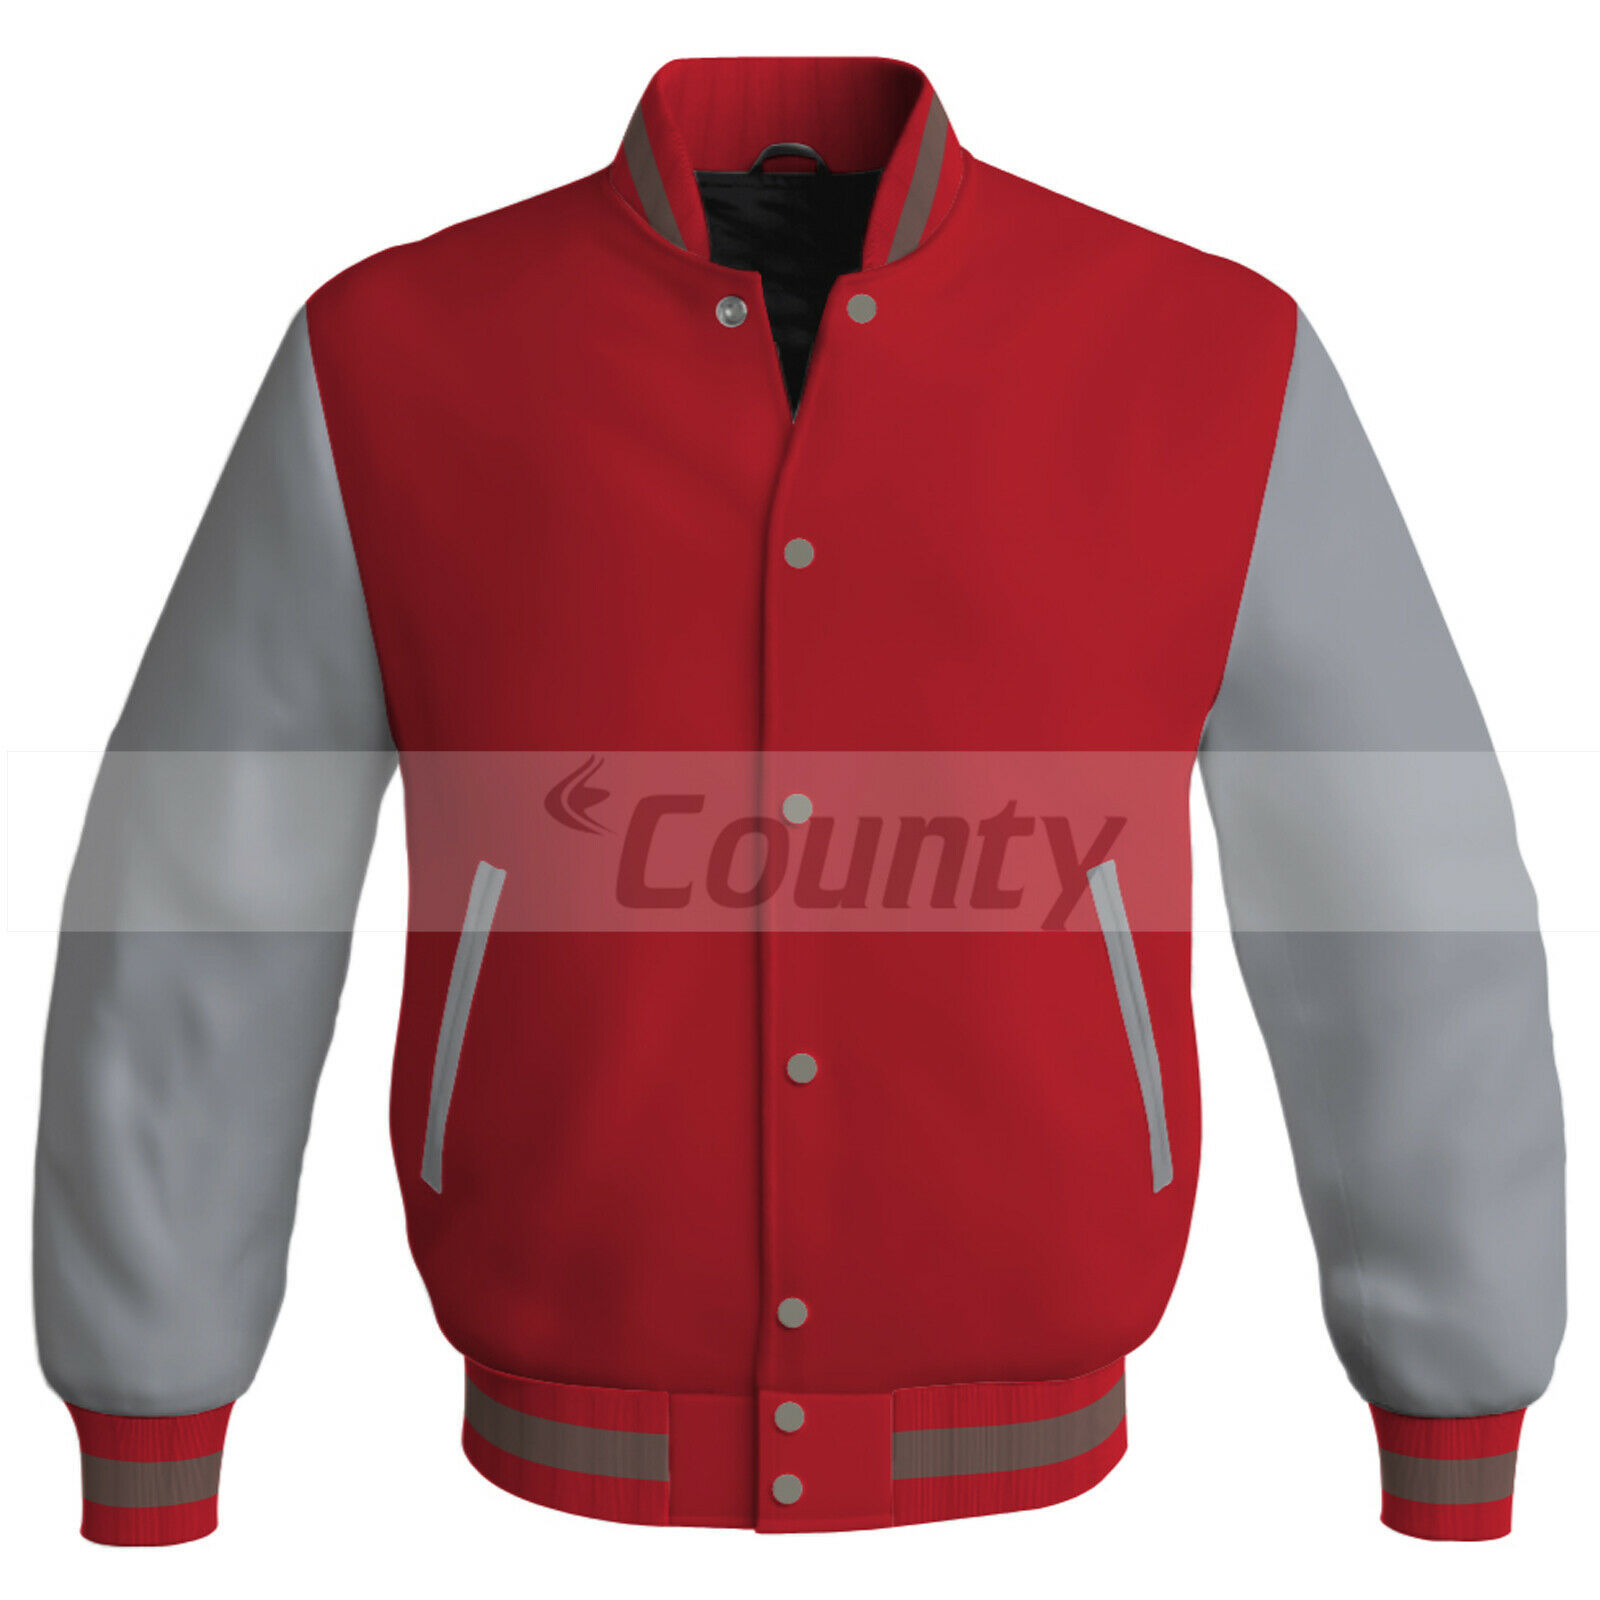 Primary image for Letterman Baseball College Super Bomber Jacket Sports Red Silver Satin